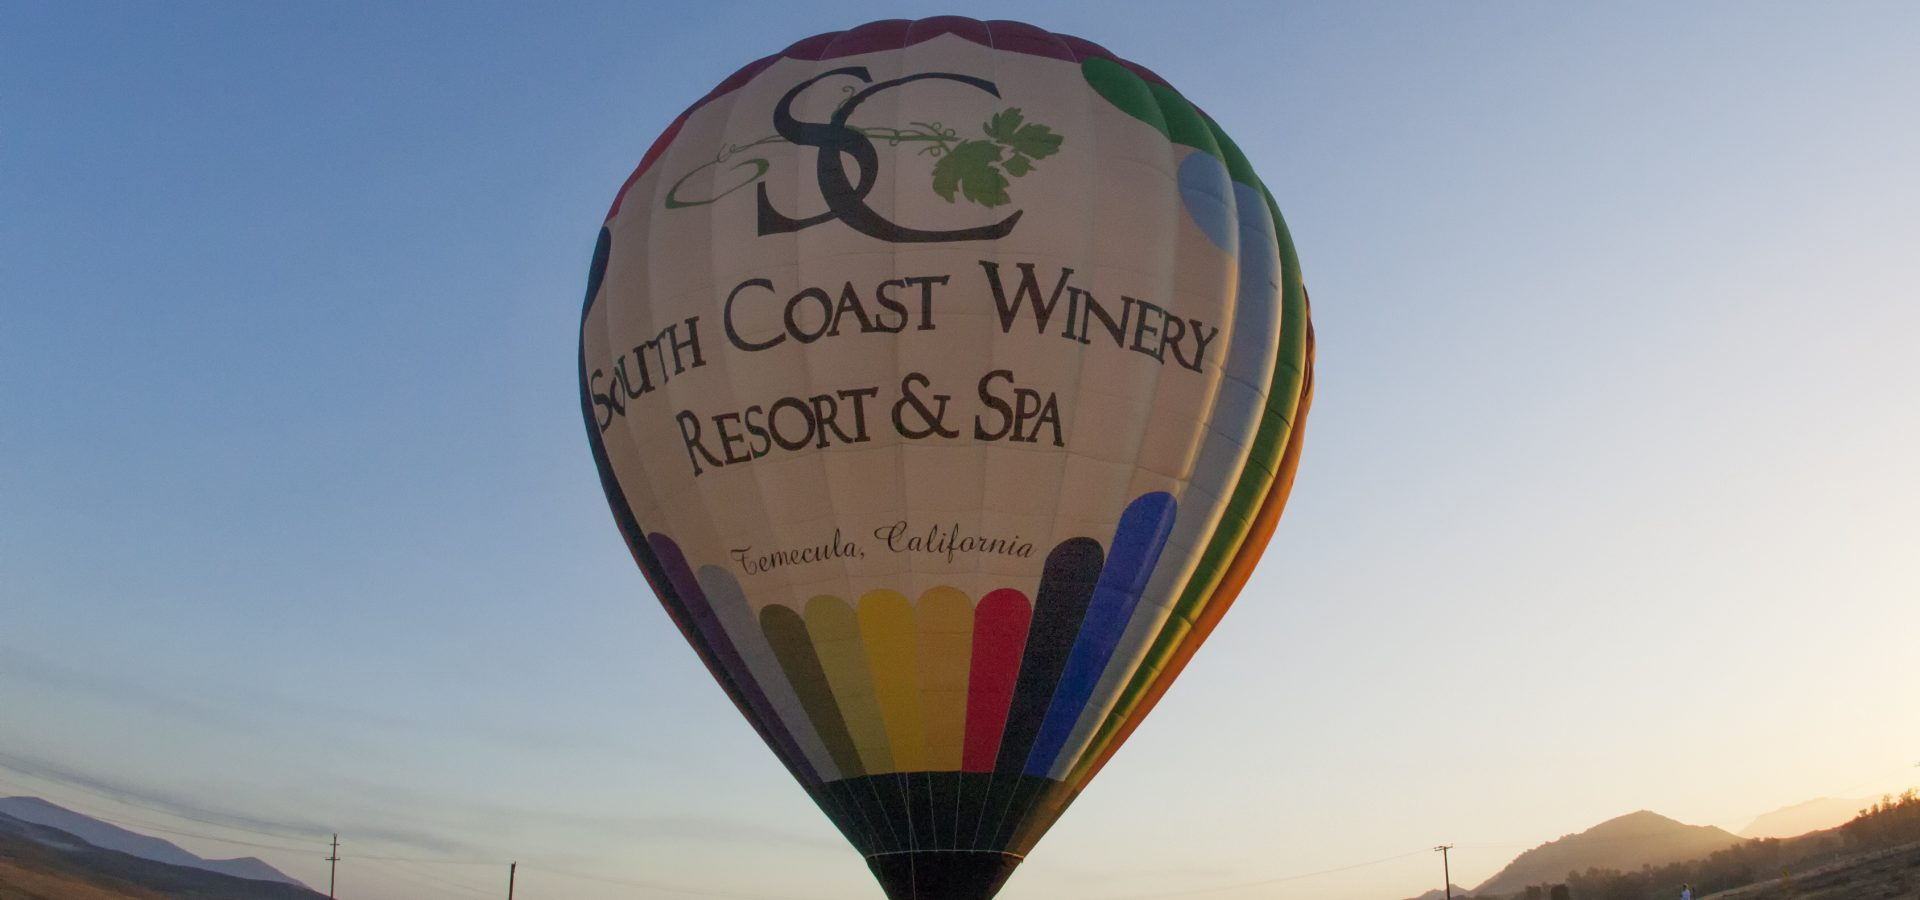 hot air balloon ride at south coast winery resort & spa